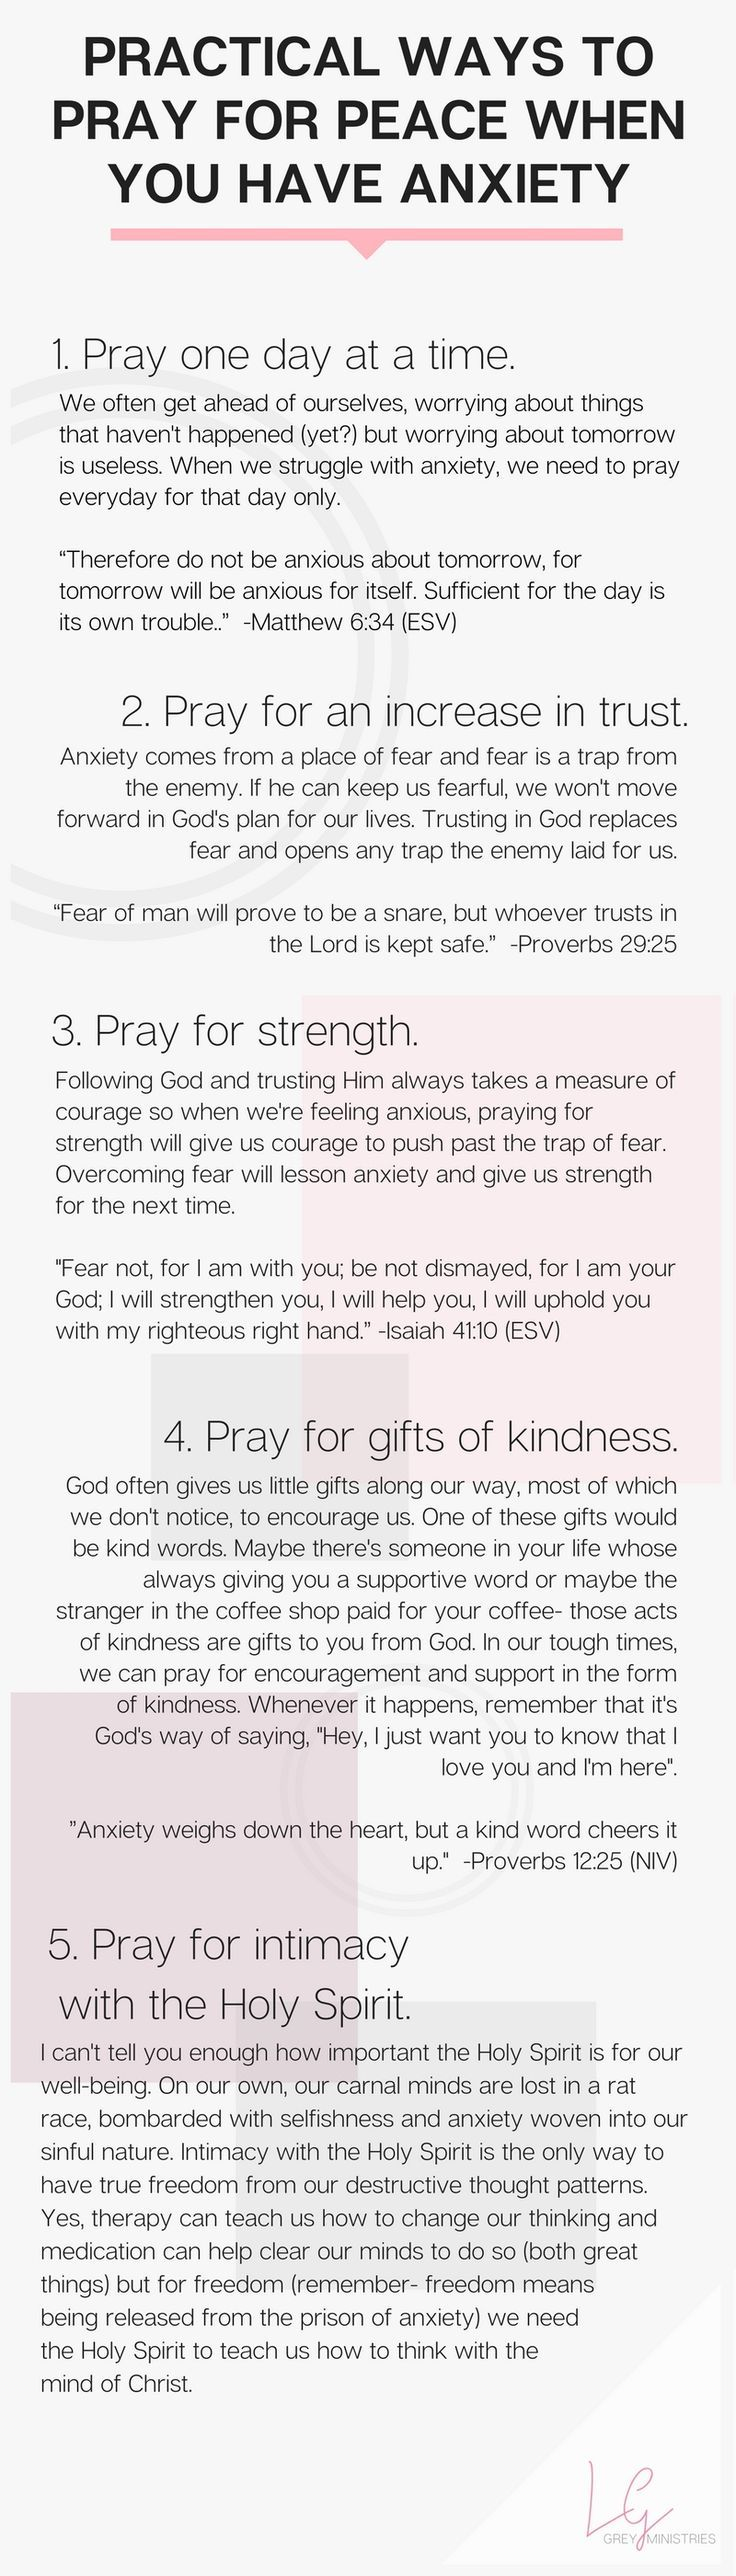 What are the ways to treat anxiety without prescription drugs? Are there natural treatments for anxiety that actually work? Leah Grey gives practical advice on how to handle anxiety as a Christian | Read more or PIN for later! (scheduled via http://www.tailwindapp.com?utm_source=pinterest&utm_medium=twpin&utm_content=post134073951&utm_campaign=scheduler_attribution)